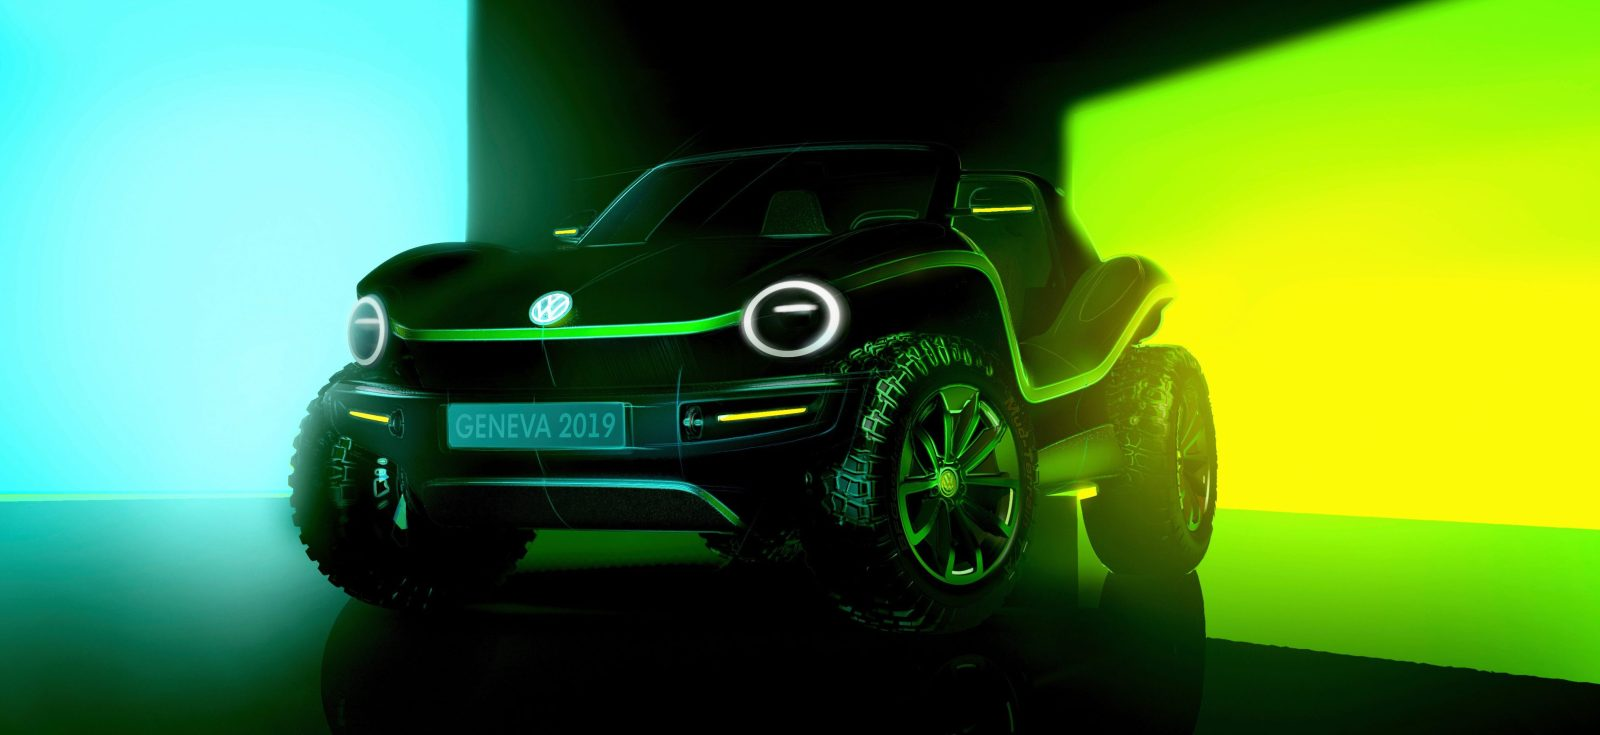 VW shares first image of new all-electric dune buggy - Electrek